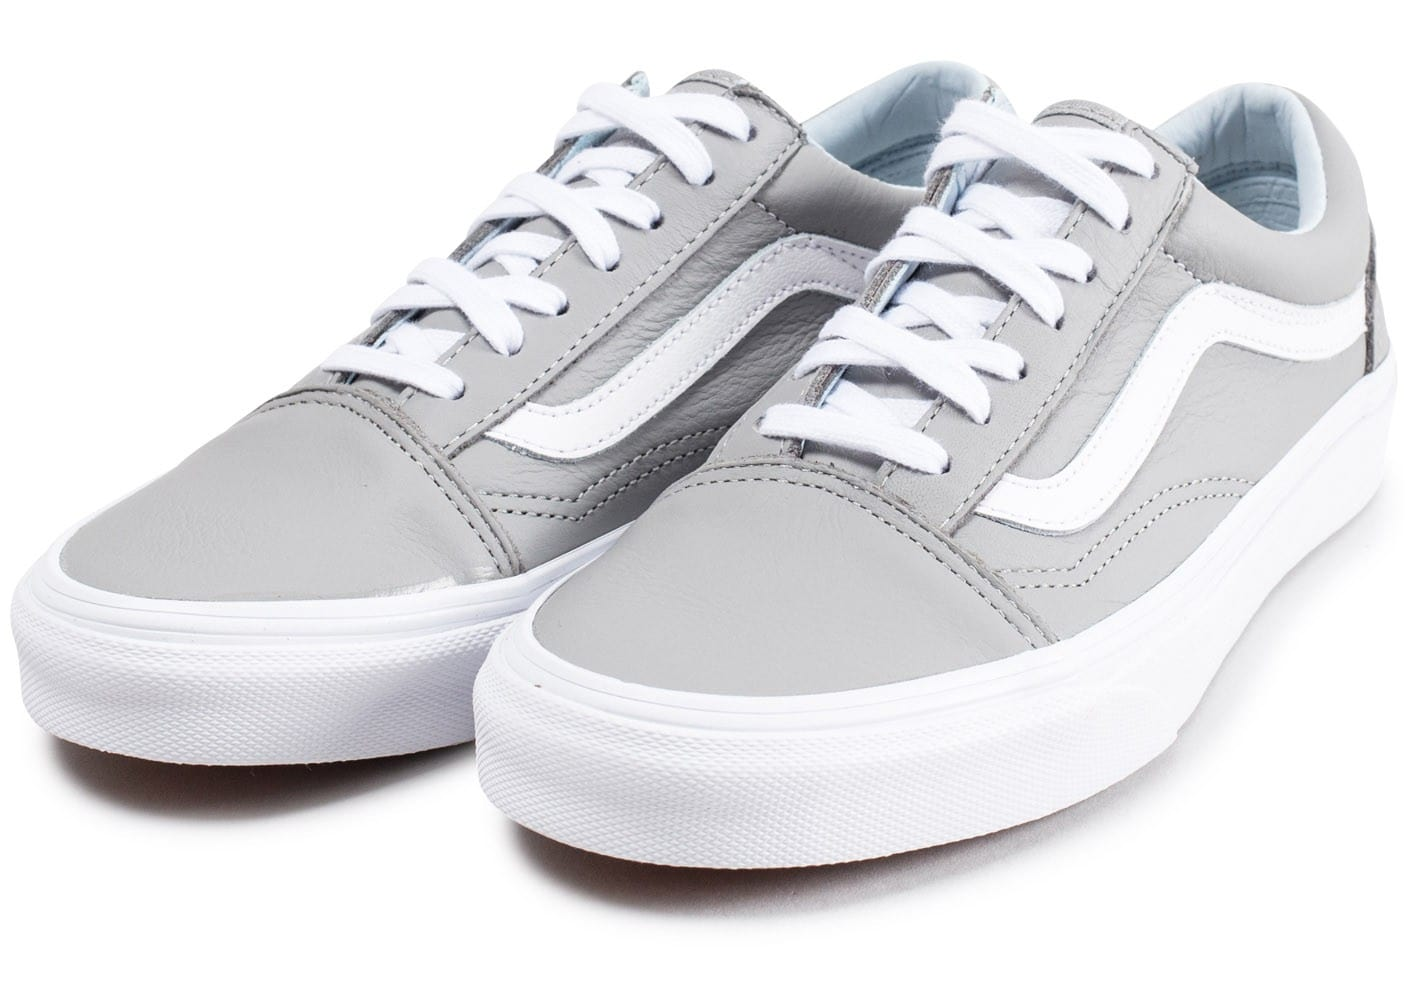 Vans Old Skool Leather grise et blanche - Chaussures Baskets ...